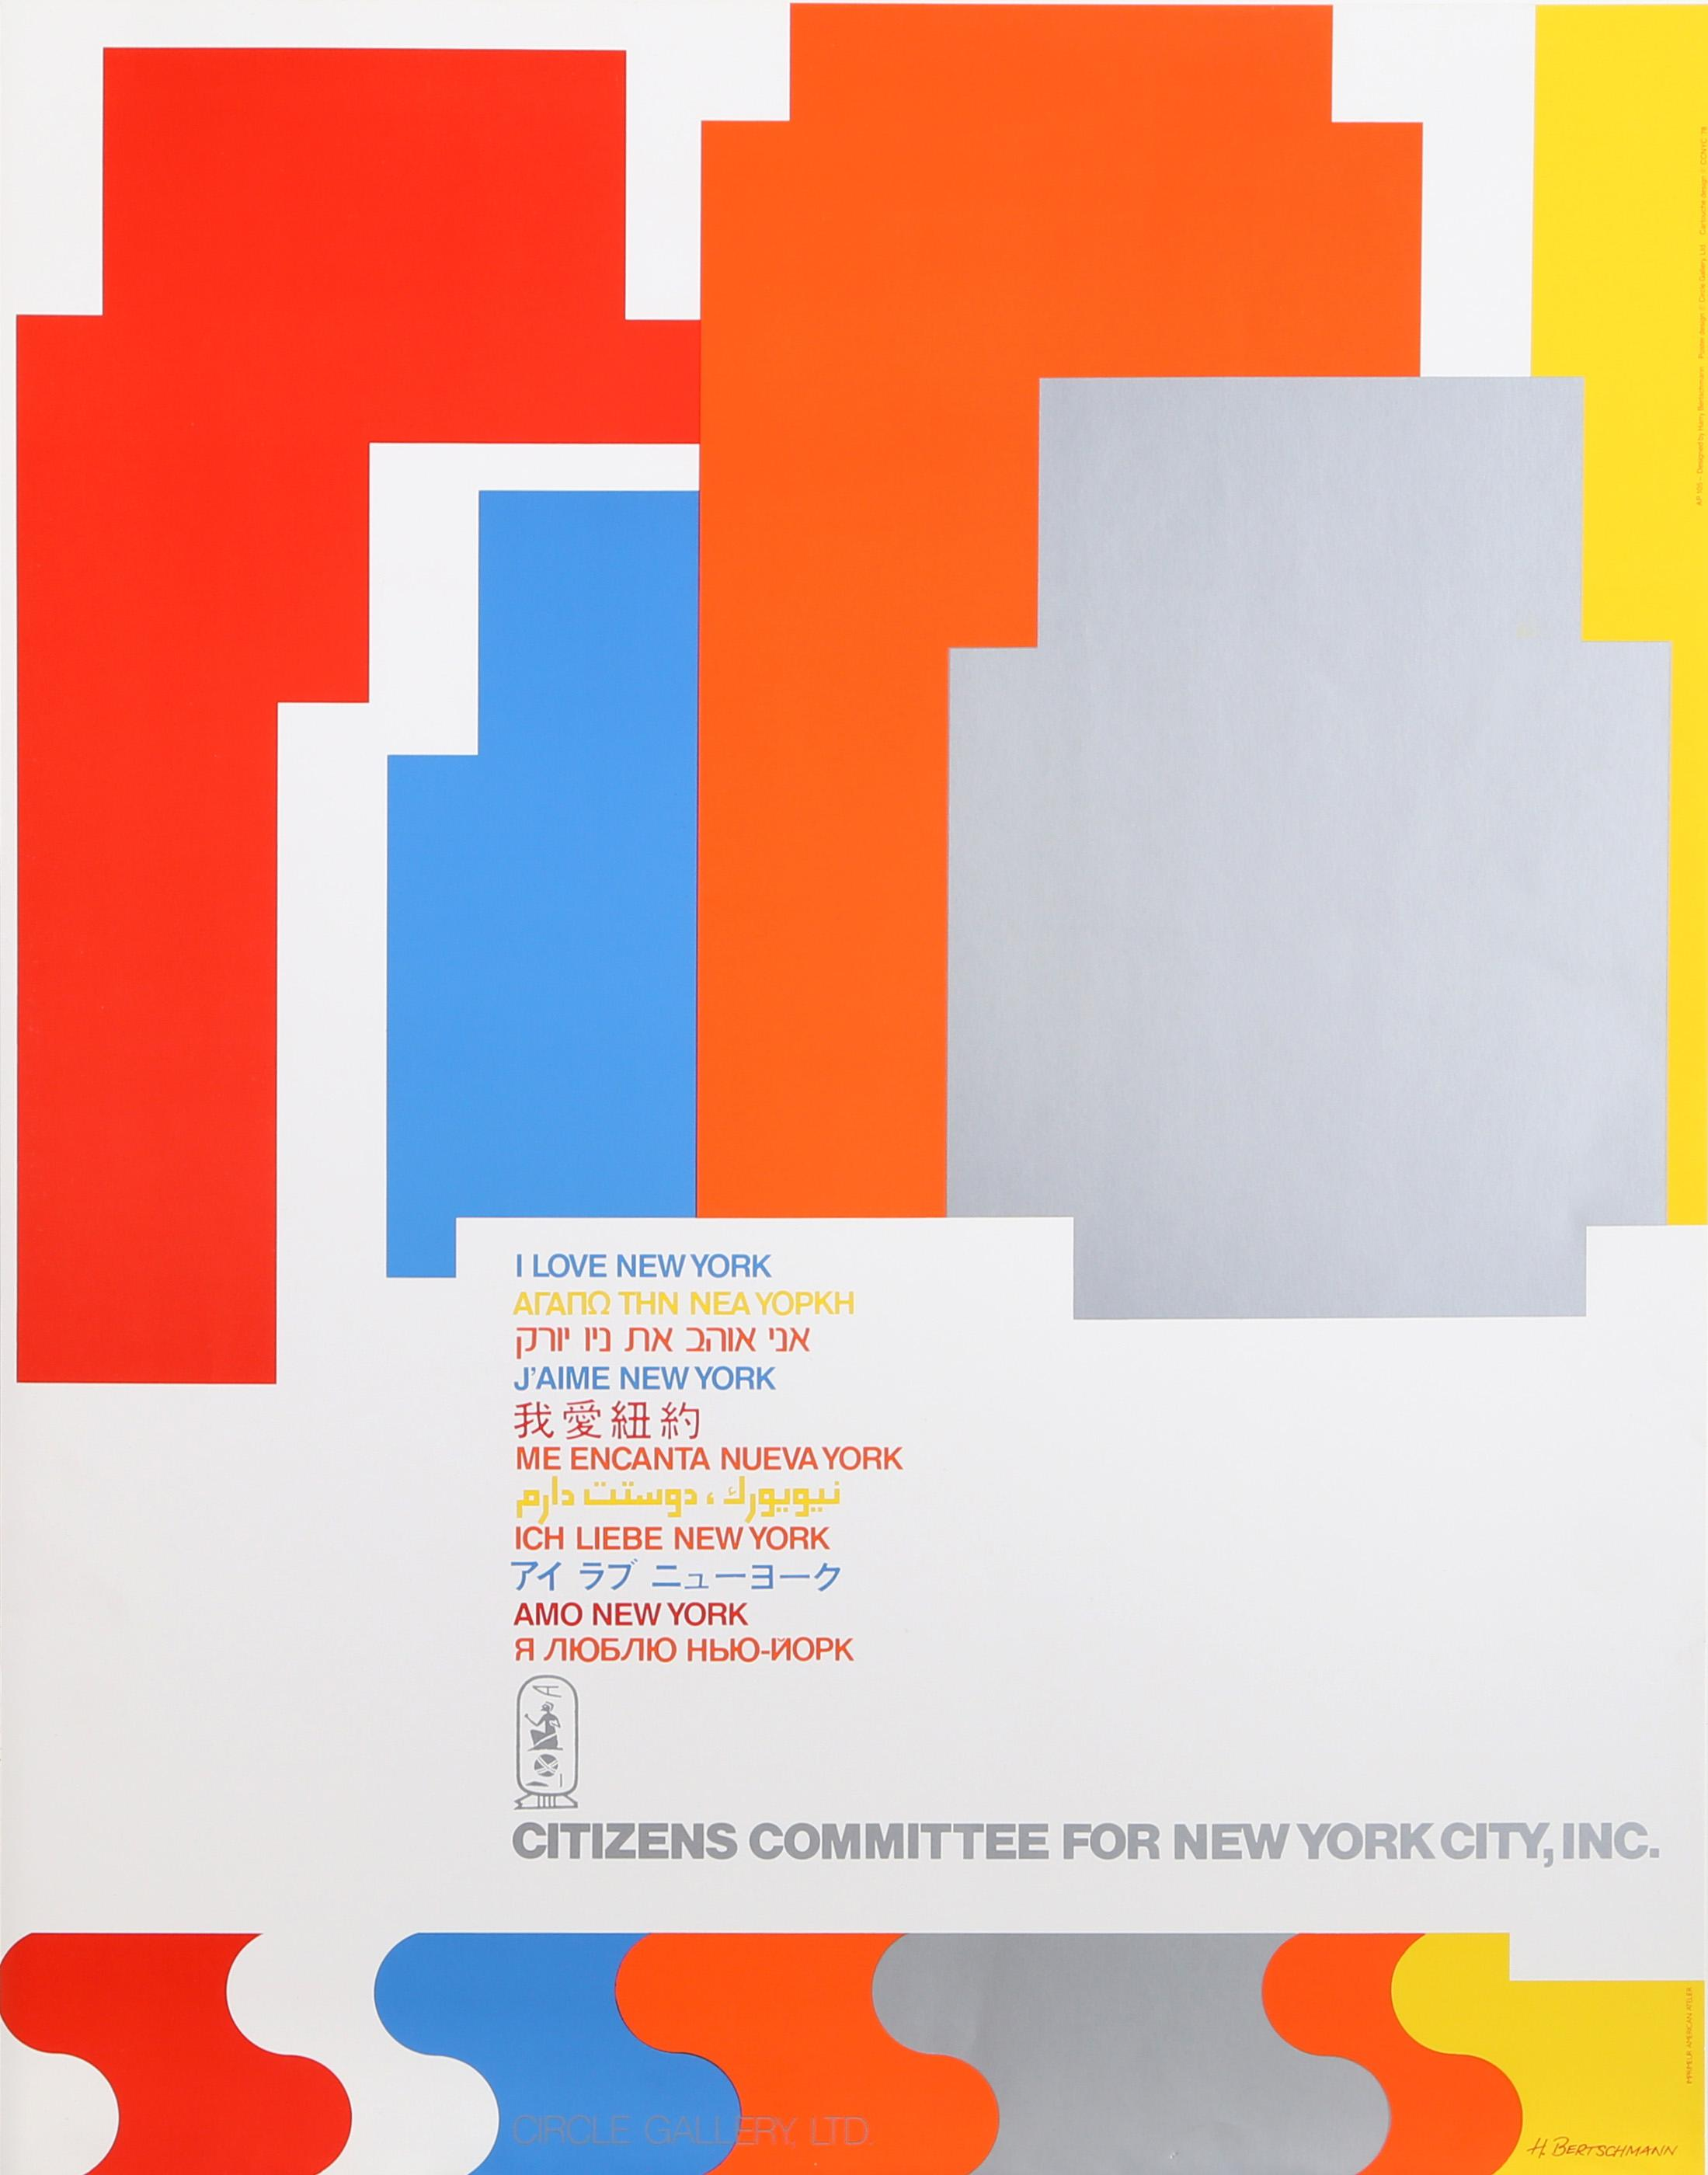 H. Bertschmann, I Love New York - Citizens Committee for NYC, Poster